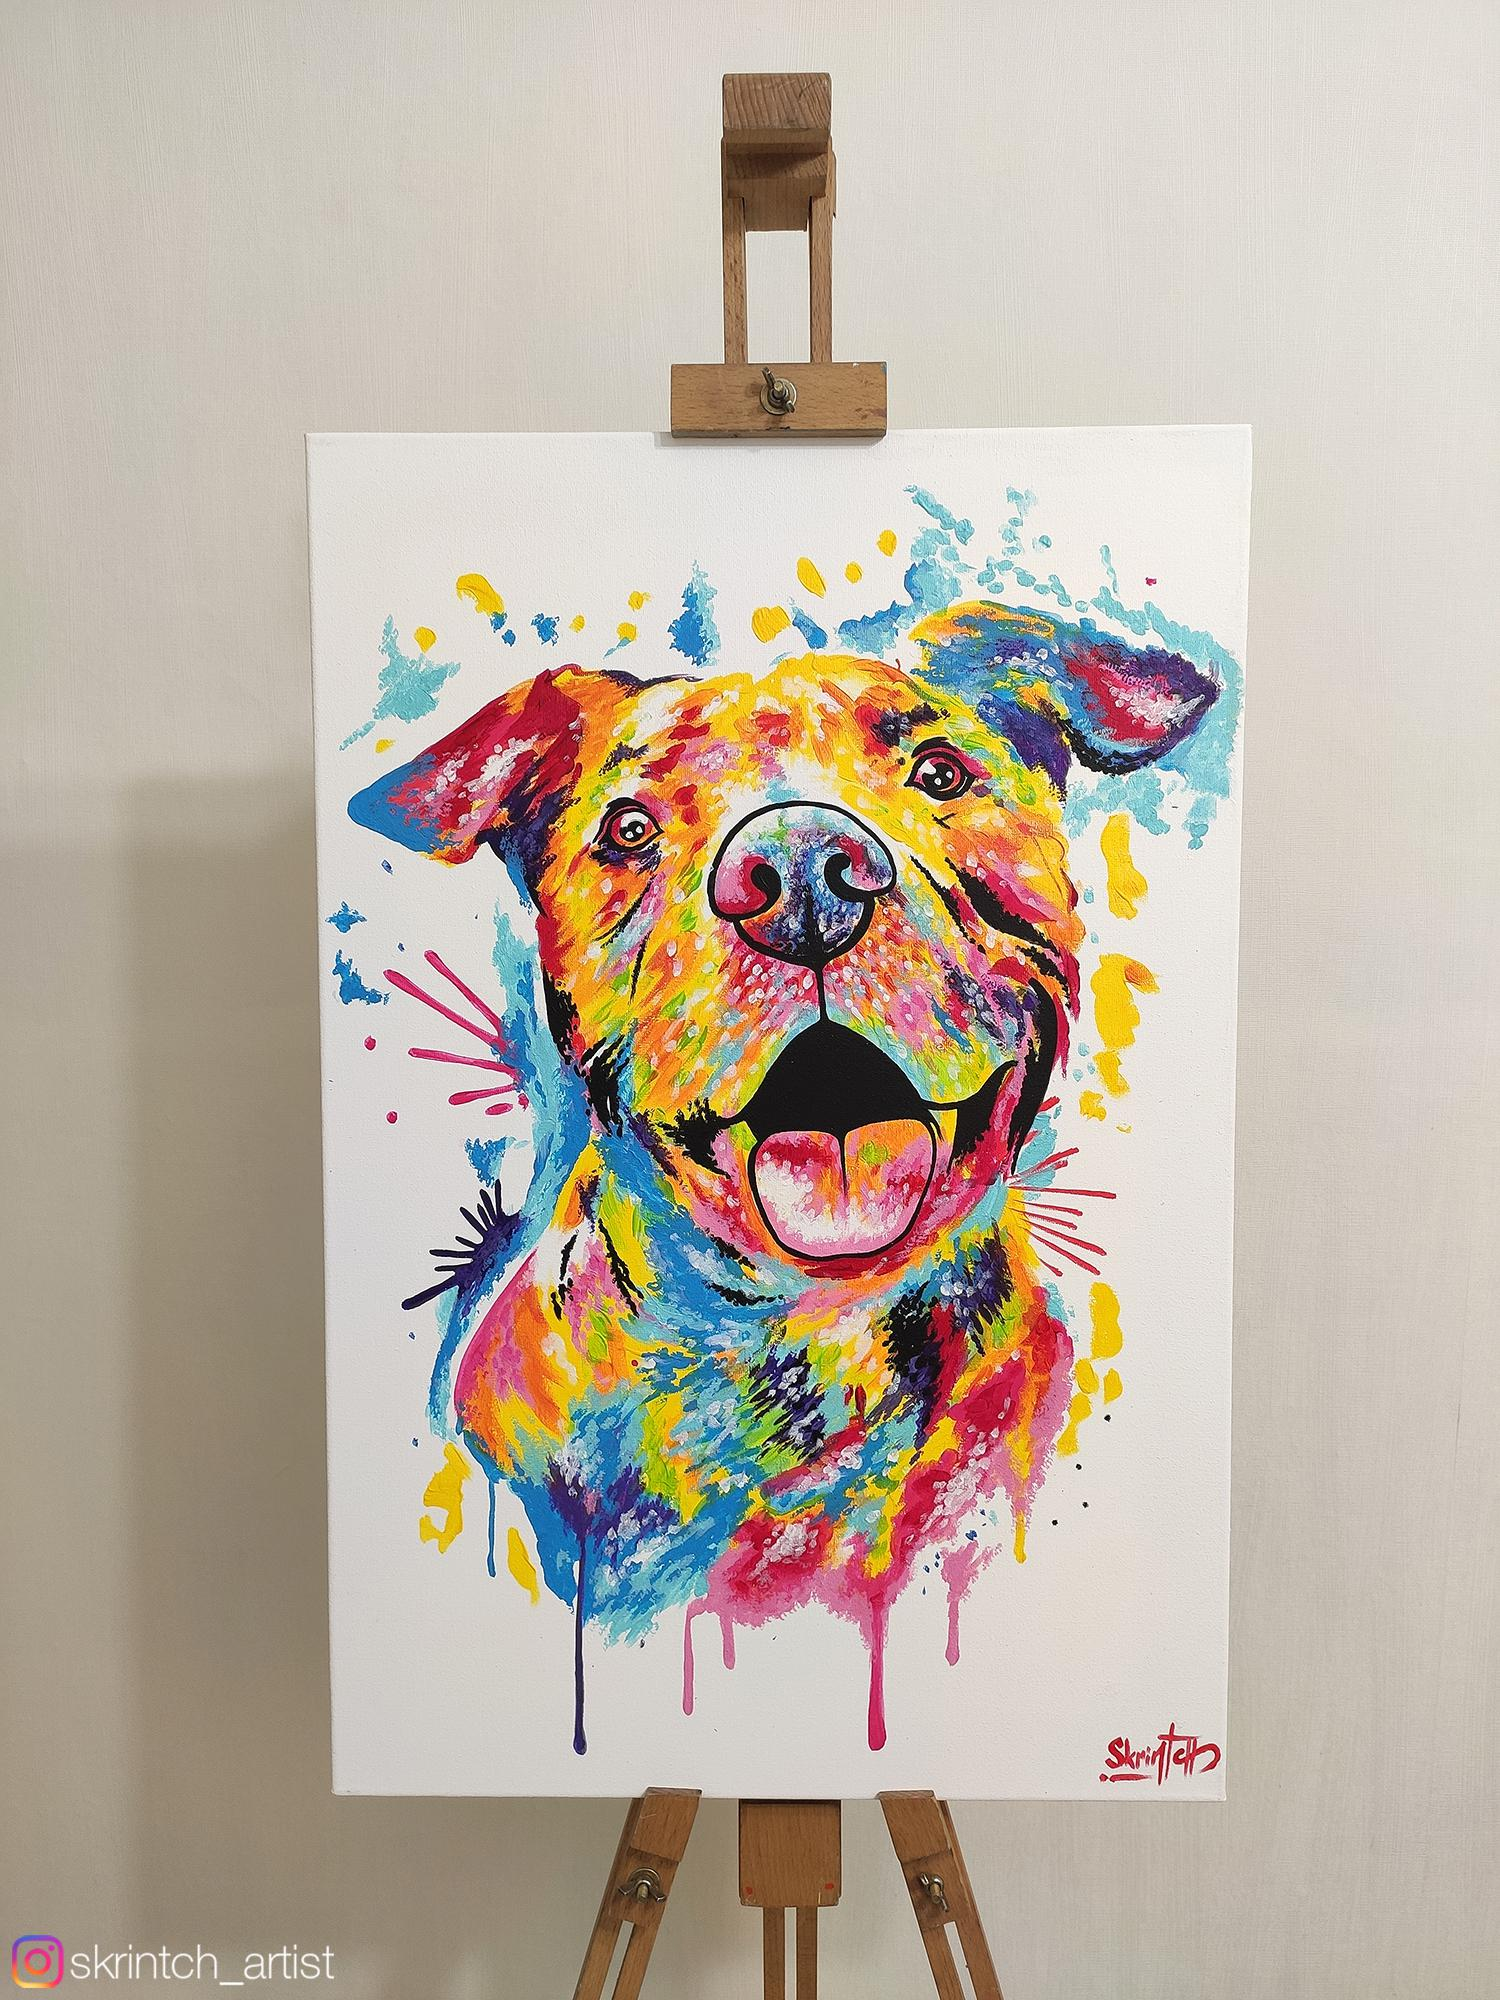 [Image] I try to show on paintings how much dogs love their owners ( @skrintch_artist )